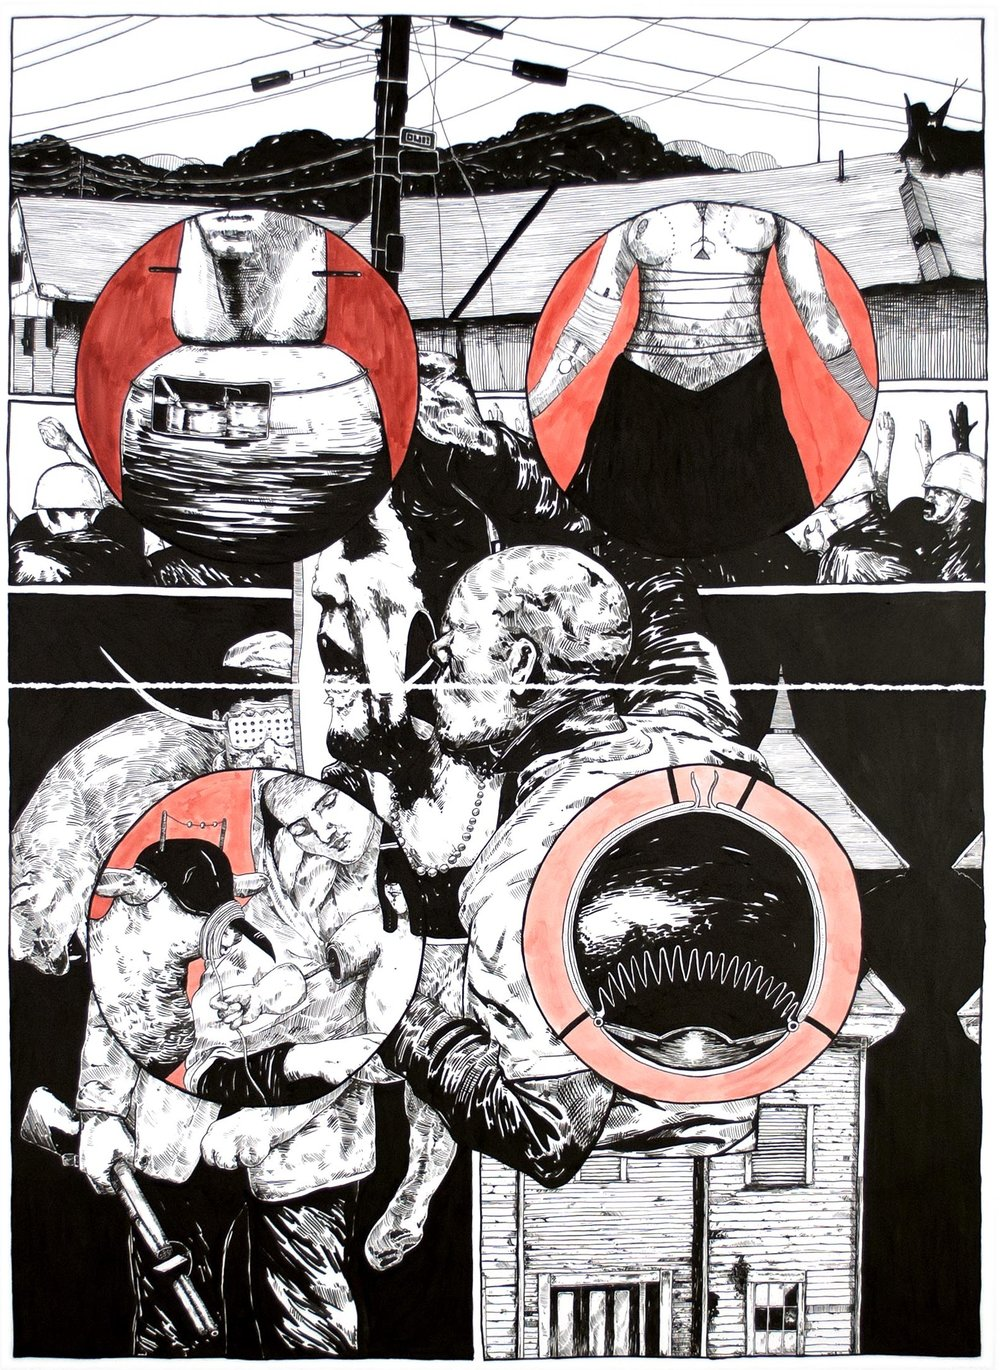 "Lower Than the Lowest Animal #5, 2014 60 x 44"" (diptych), india ink on paper"